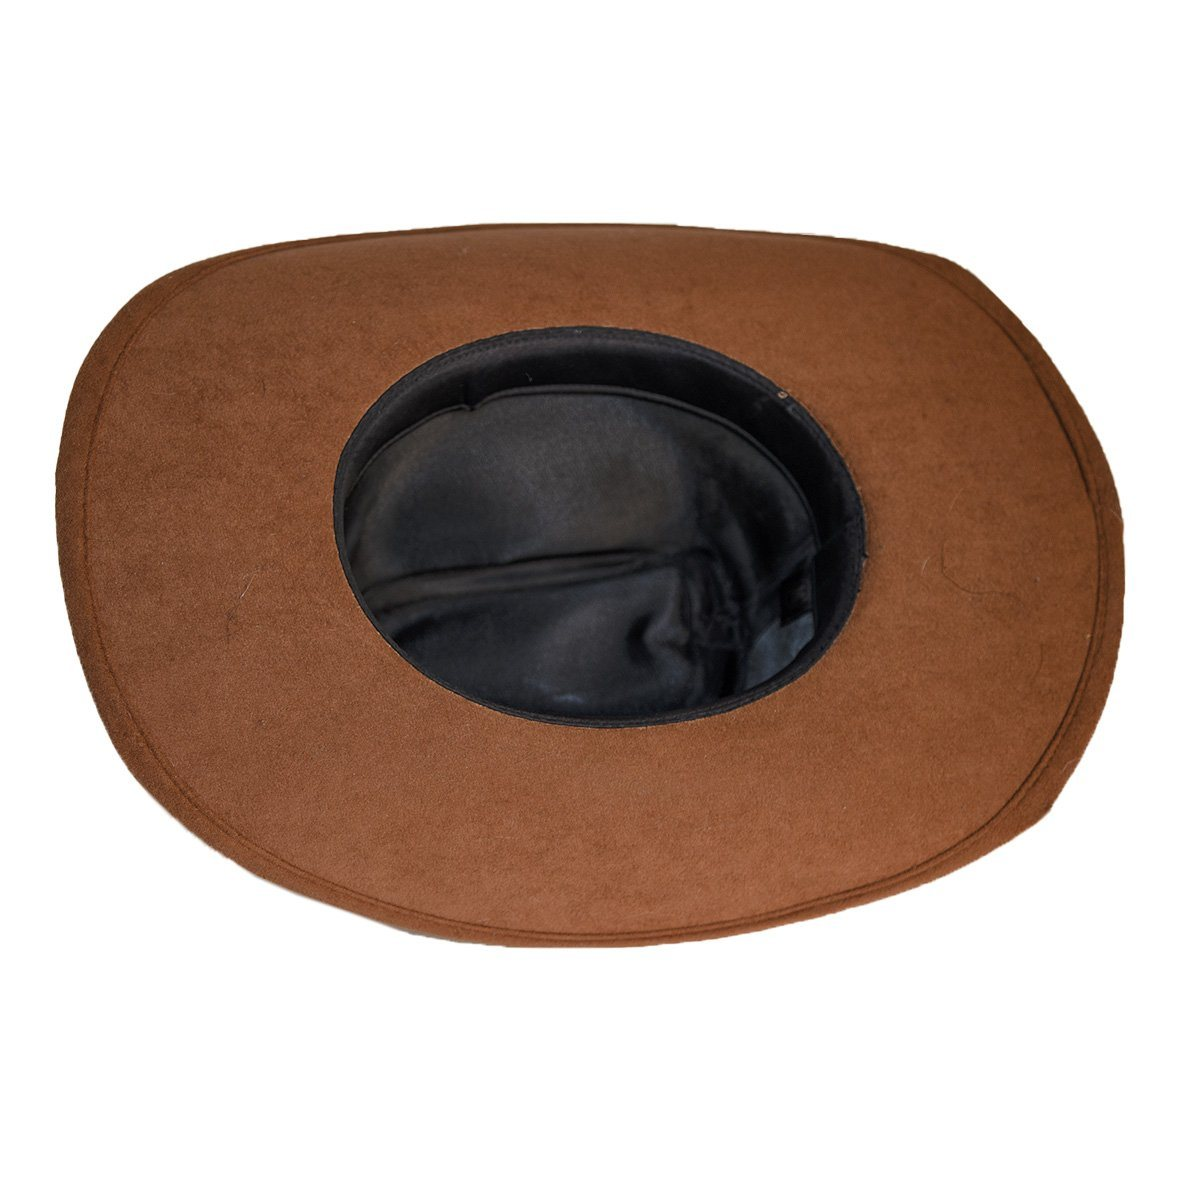 Vintage Cowboy Hat 6, Dark Tan Wool Felt, Feathers